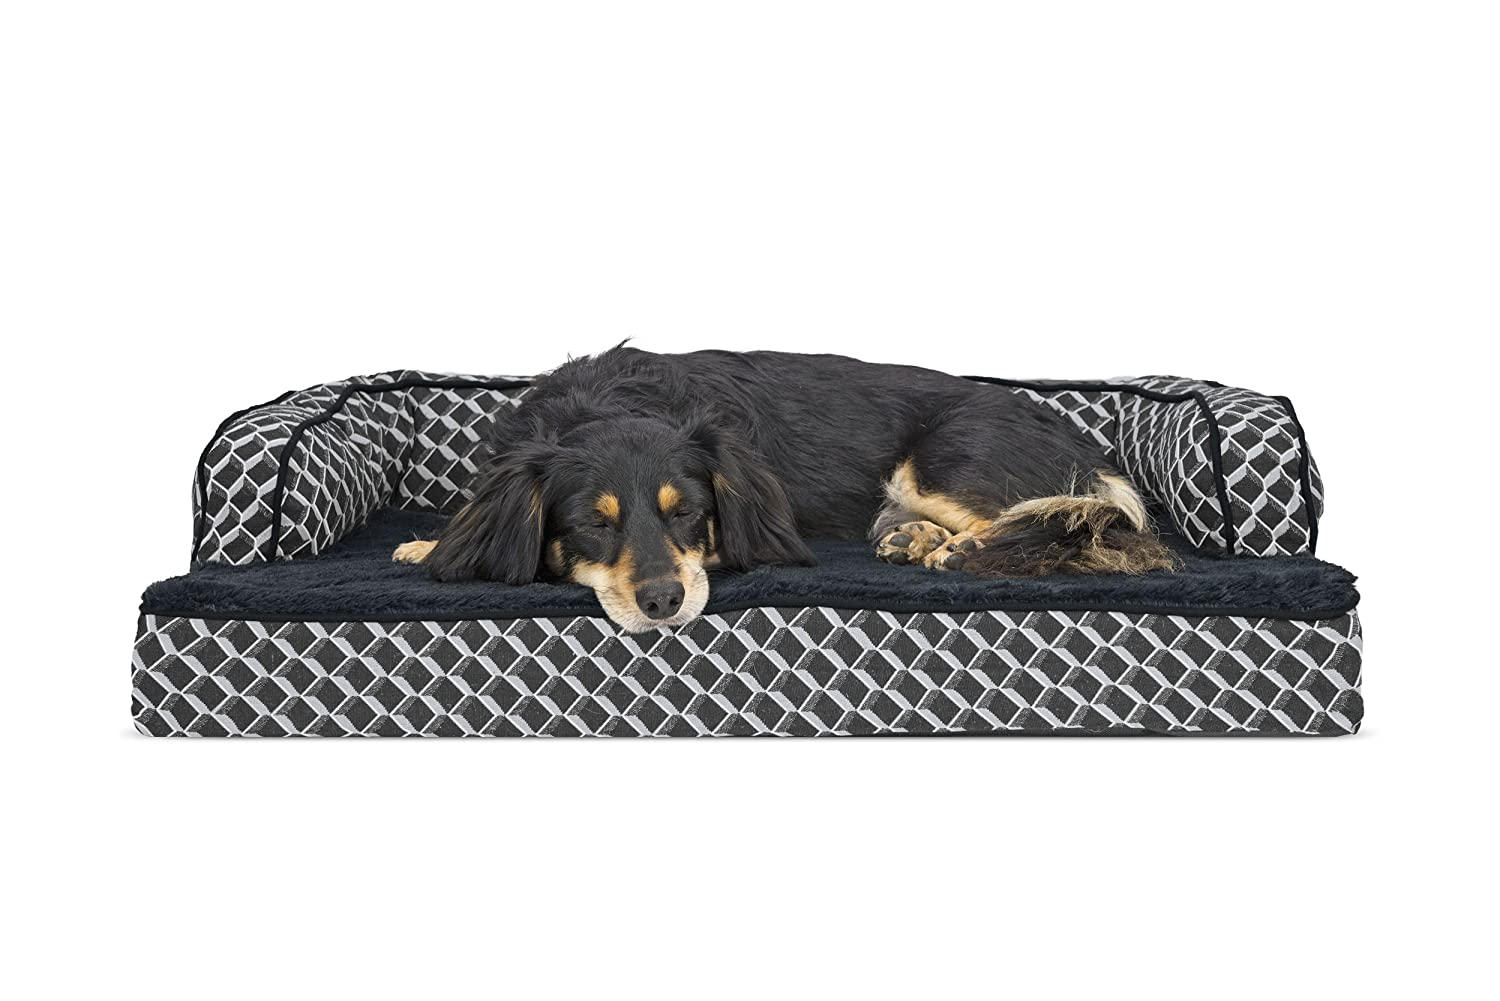 FurHaven Pet Dog Bed   Memory Foam Plush & Decor Comfy Couch Sofa-Style Pet Bed for Dogs & Cats, Diamond Grey, Medium